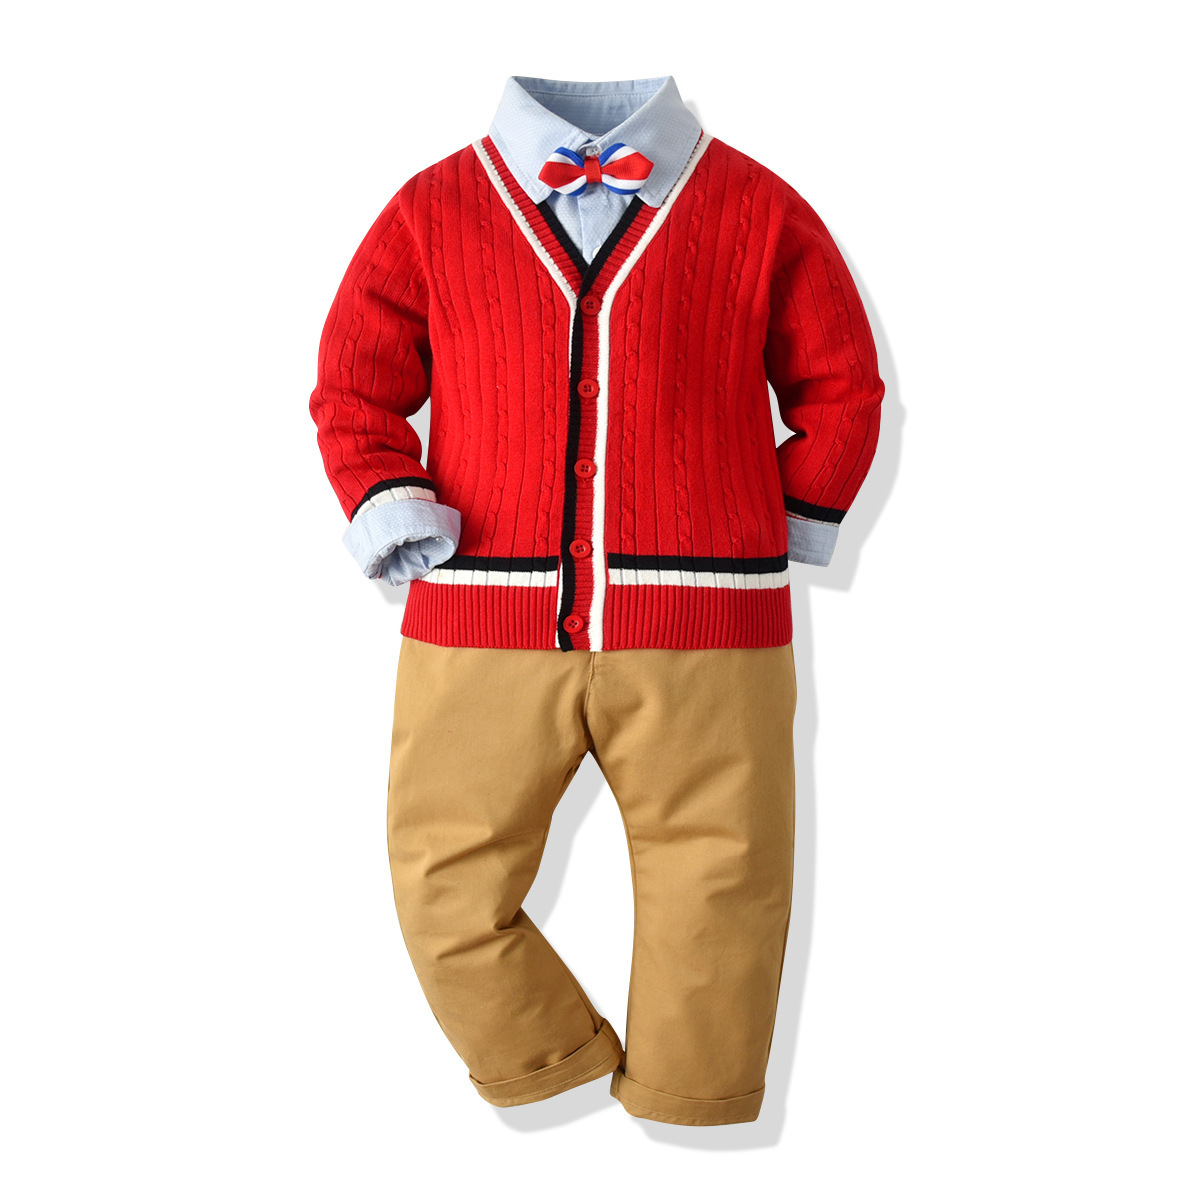 2019 autumn children clothes new design red sweater casual sets wholesale baby boys clothes